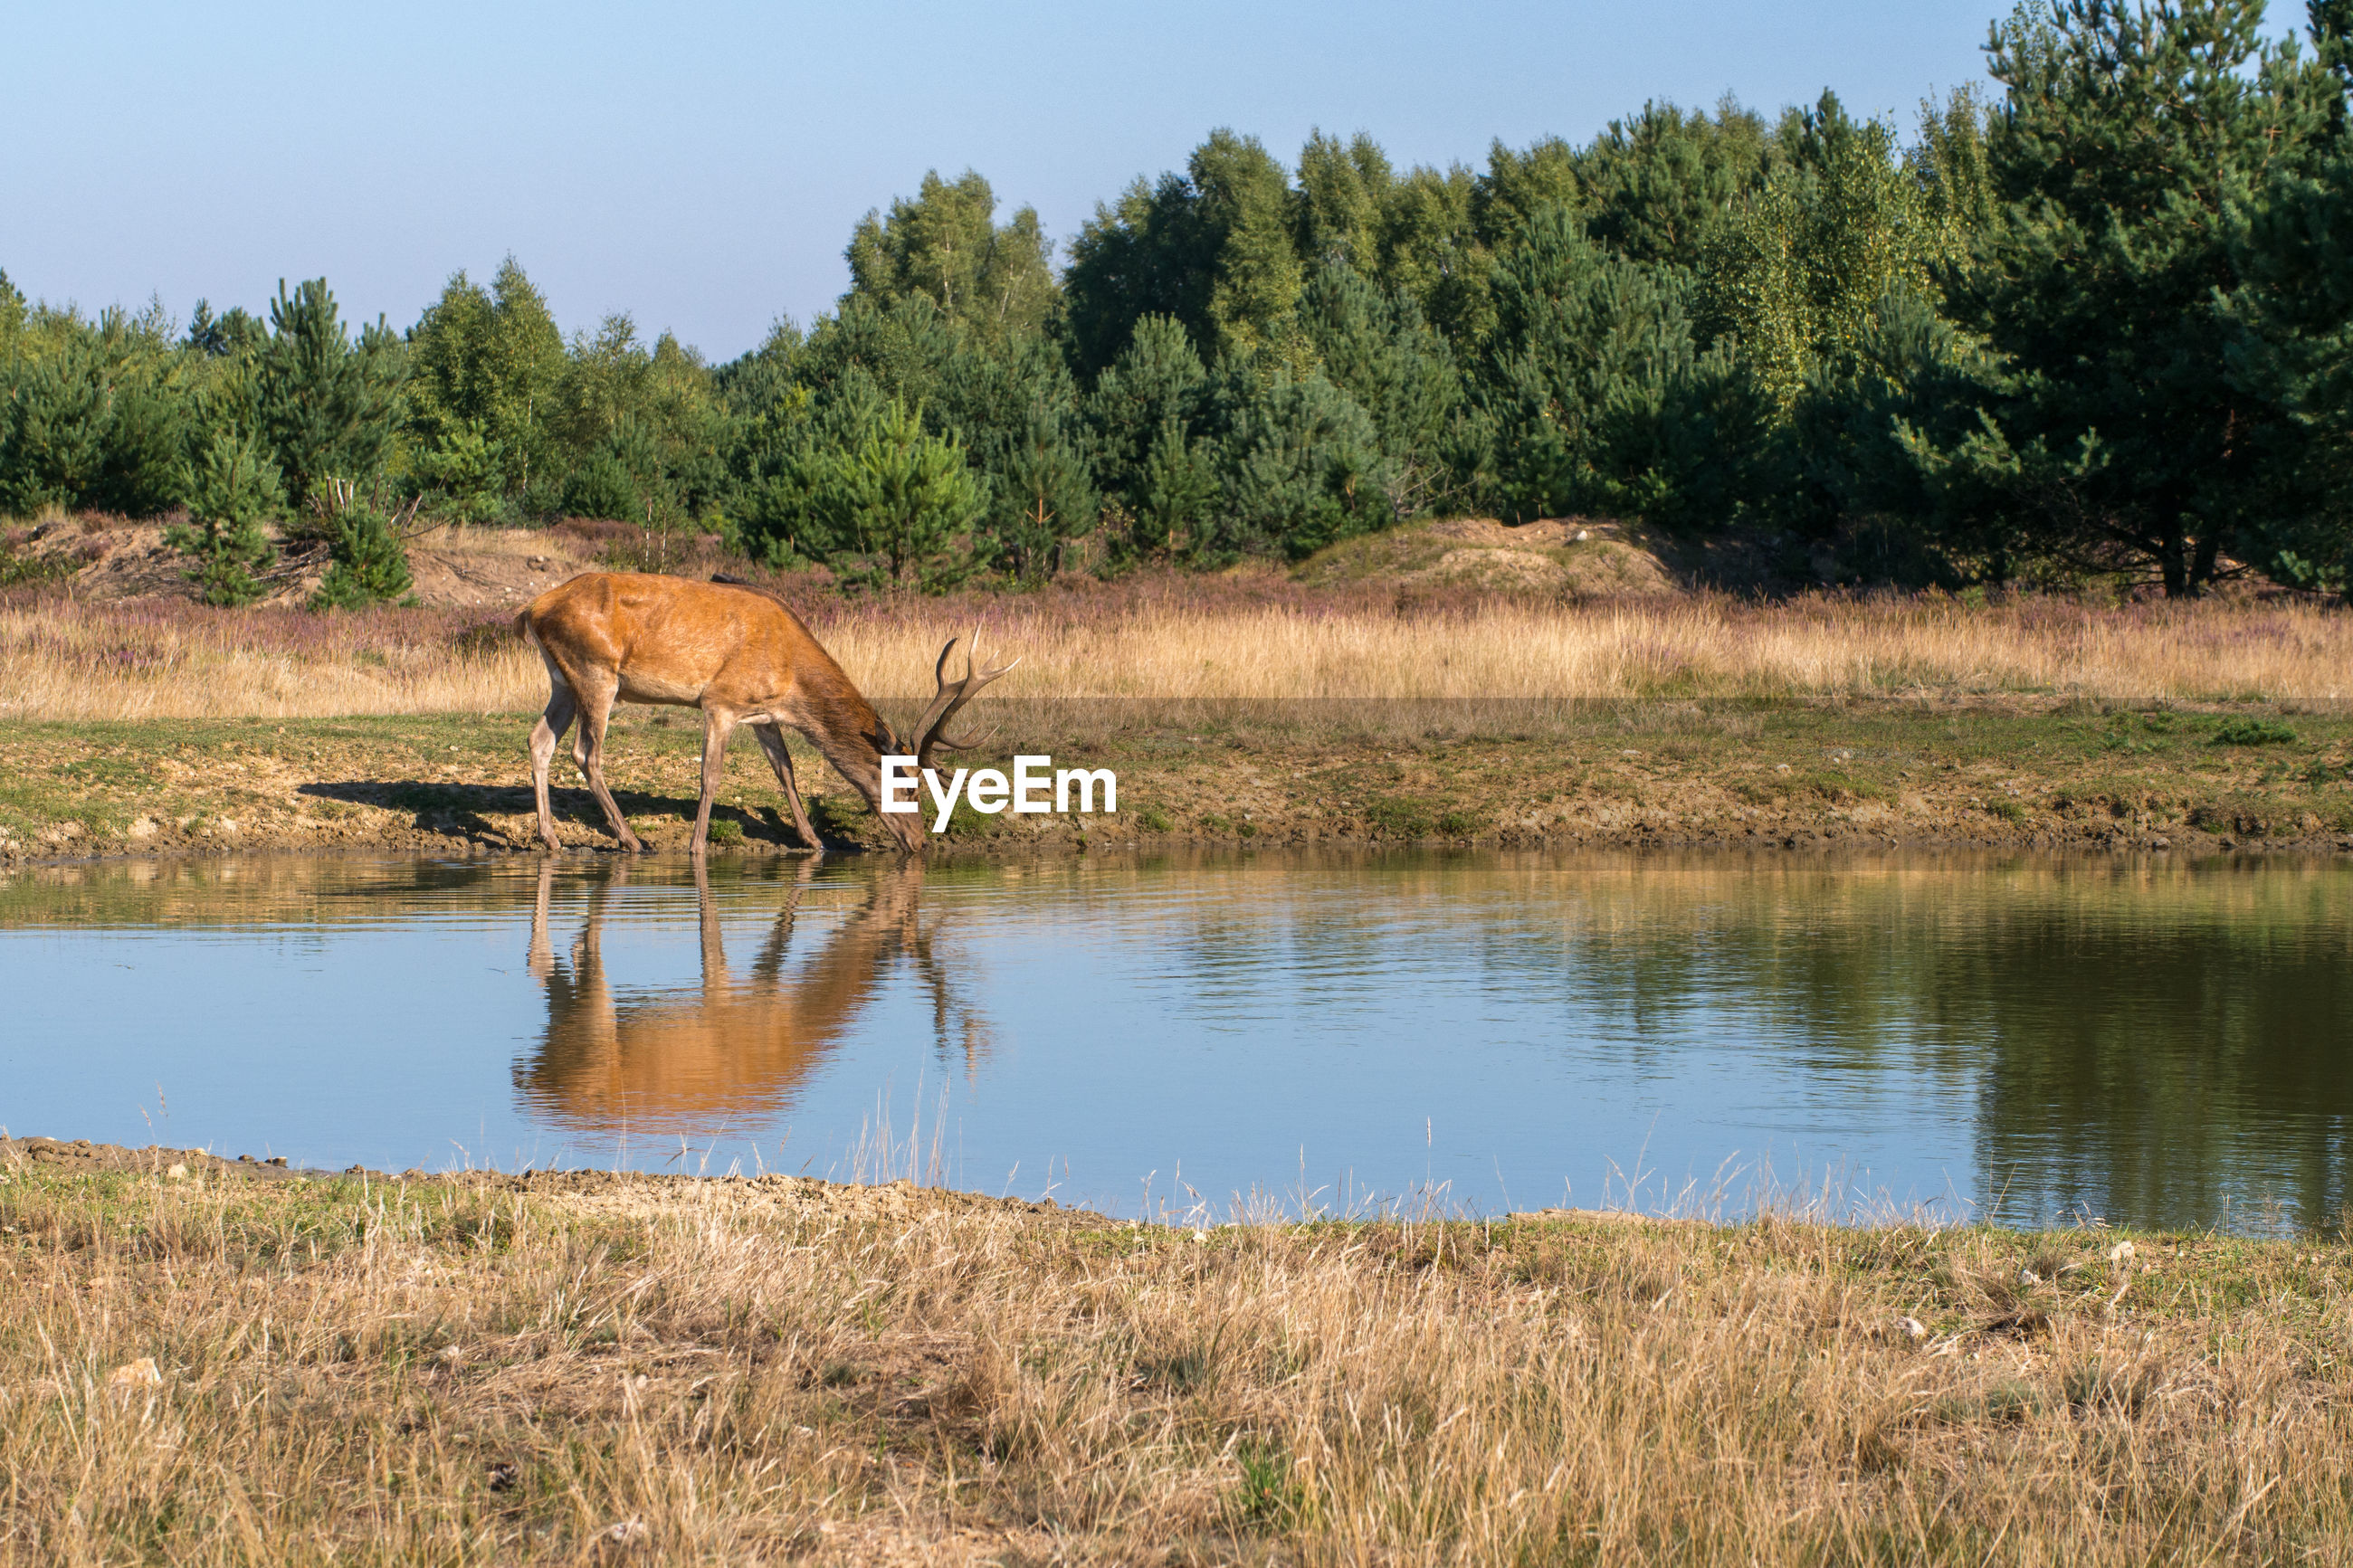 Deer drinking water at lakeshore in forest against sky